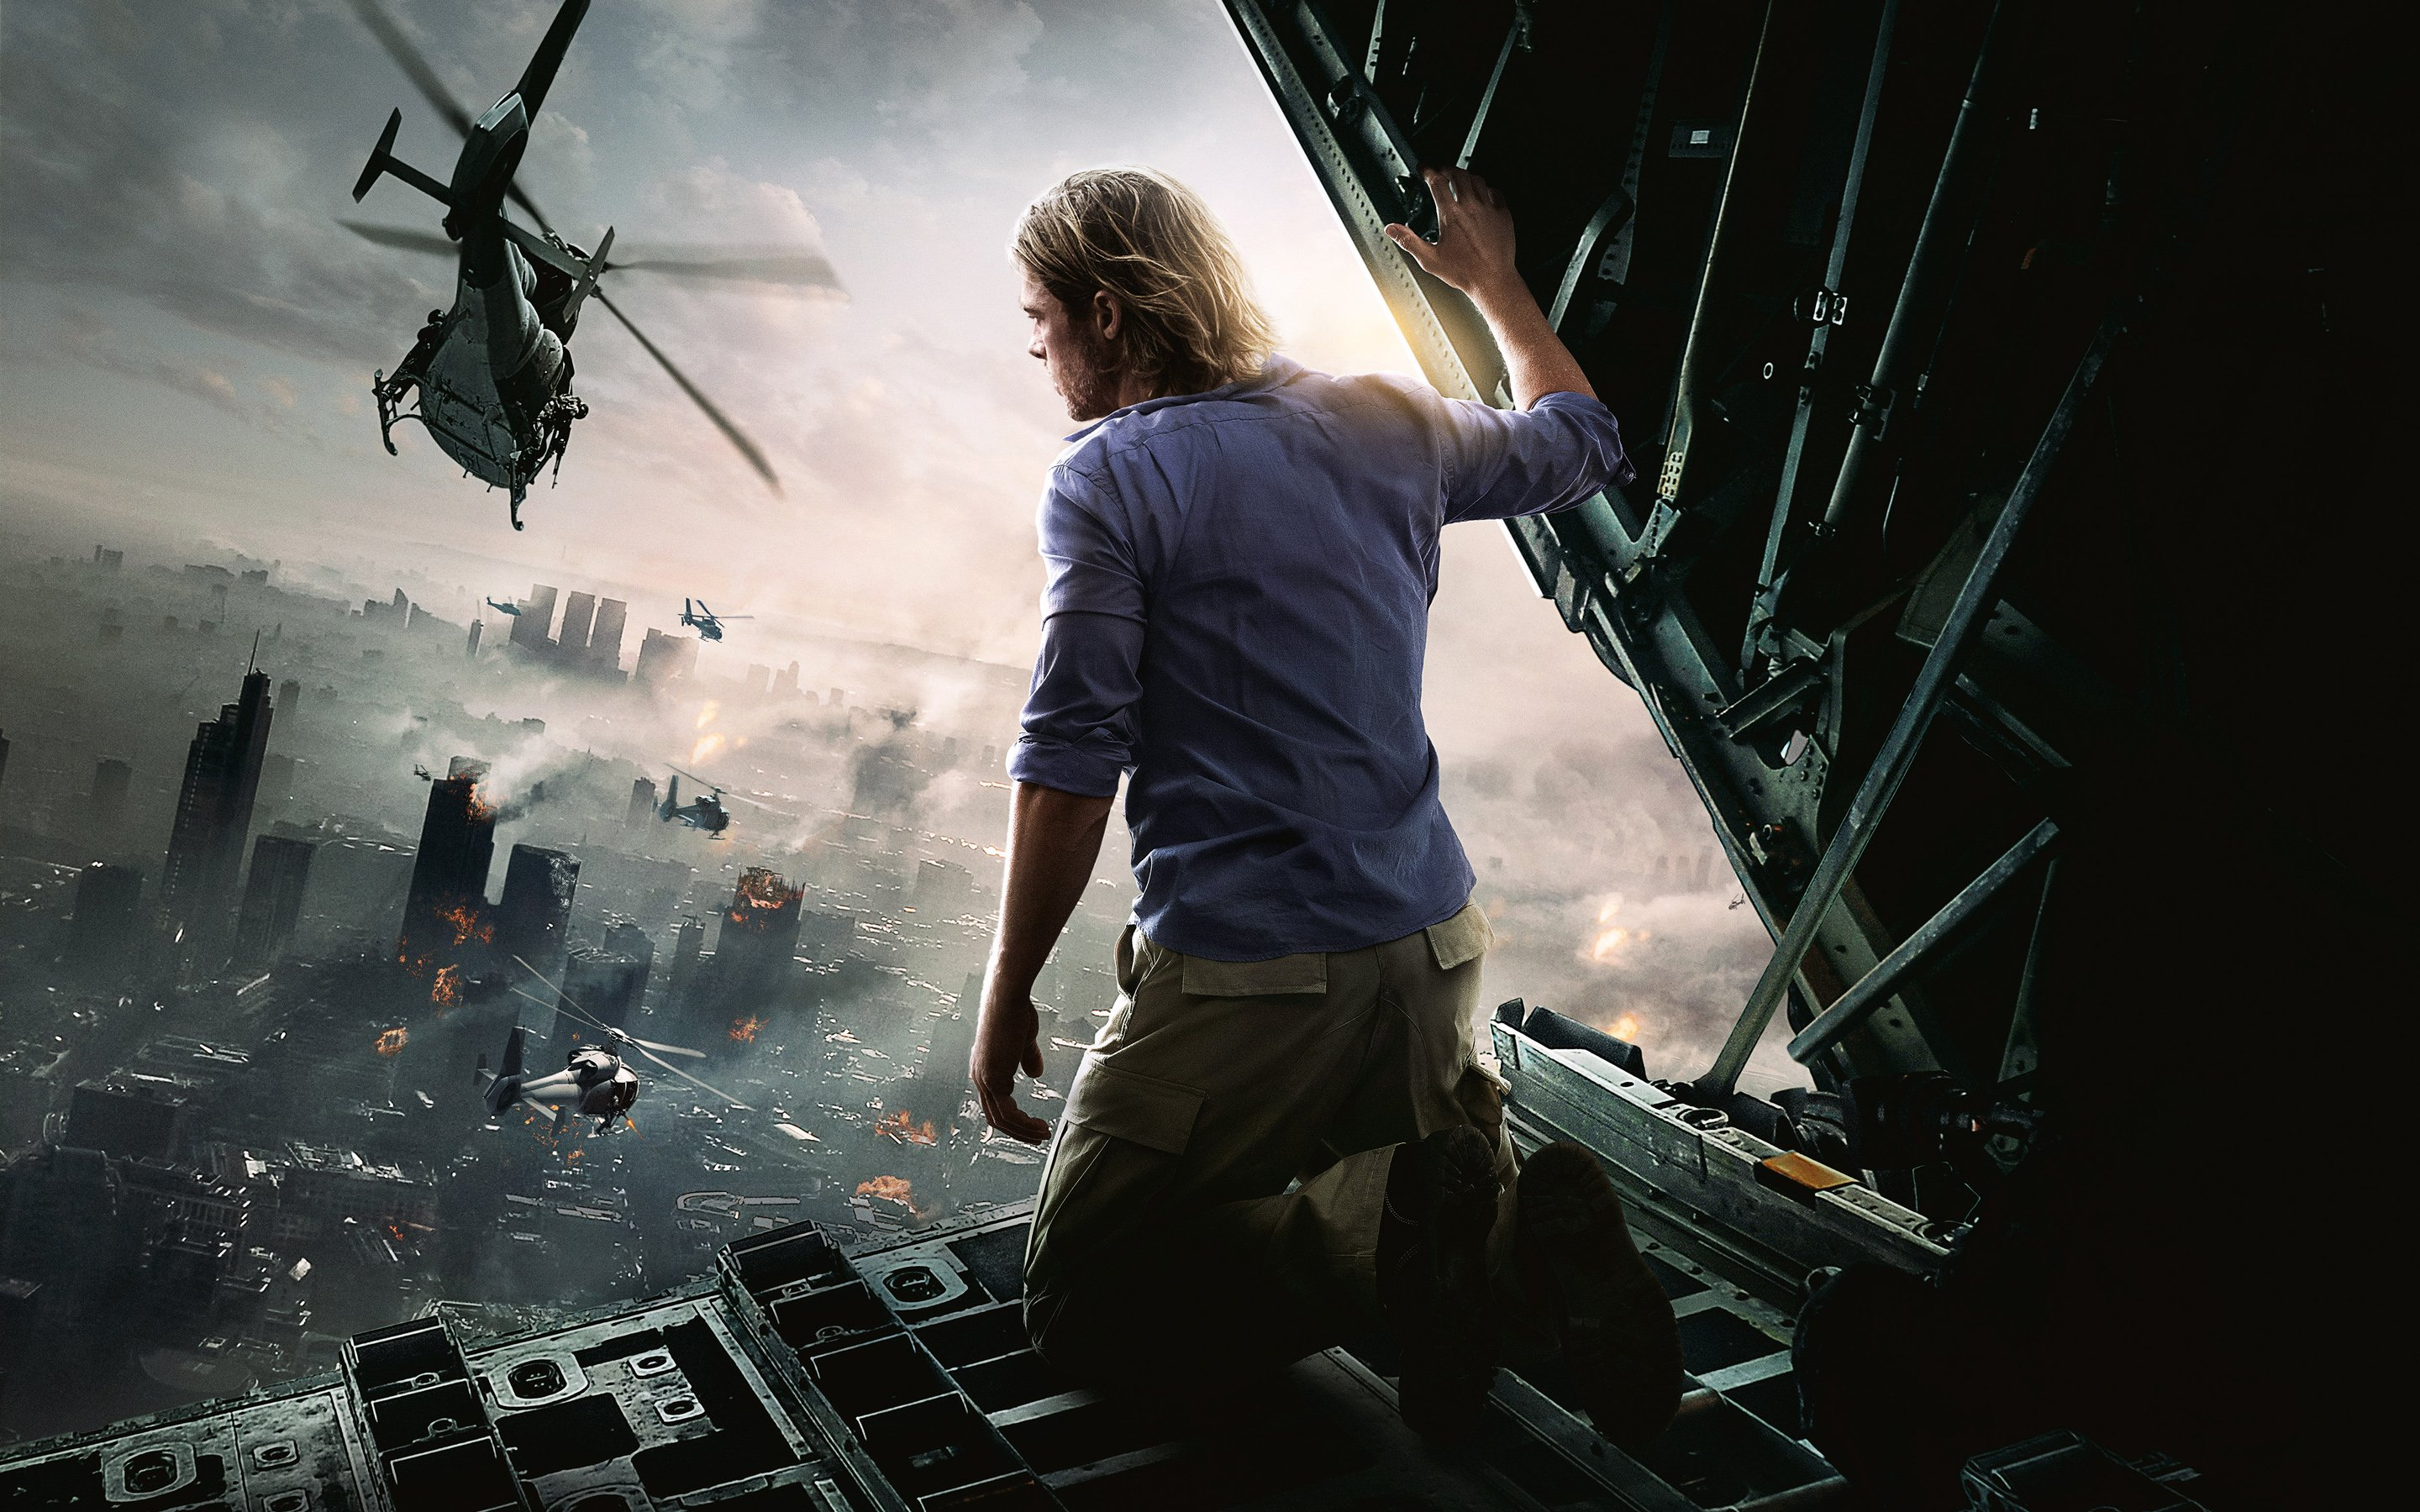 Brad Pitt World War Z Movie Wallpapers HD Wallpapers 2880x1800